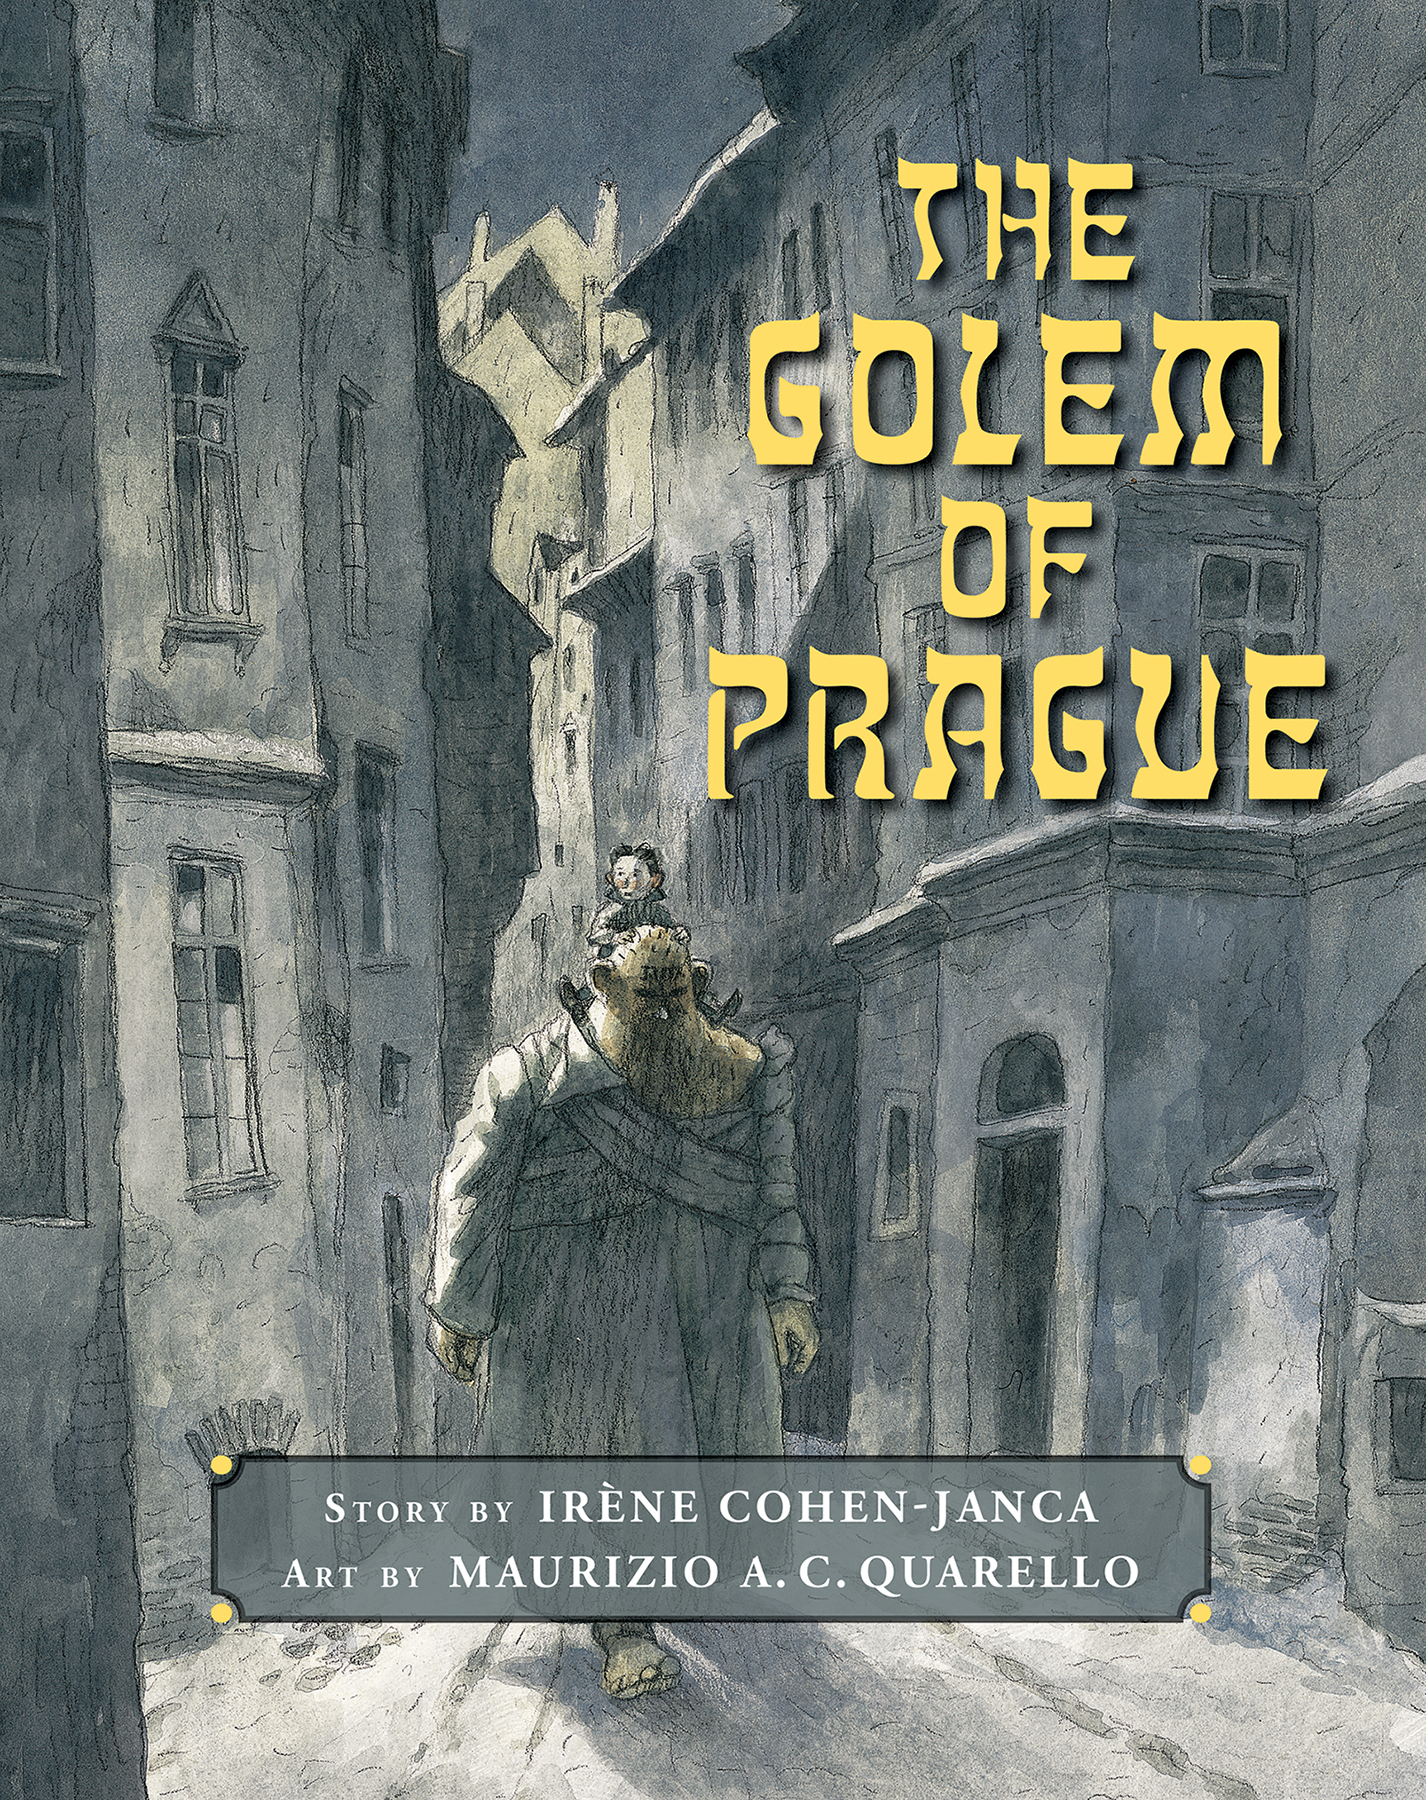 The Golem of Prague